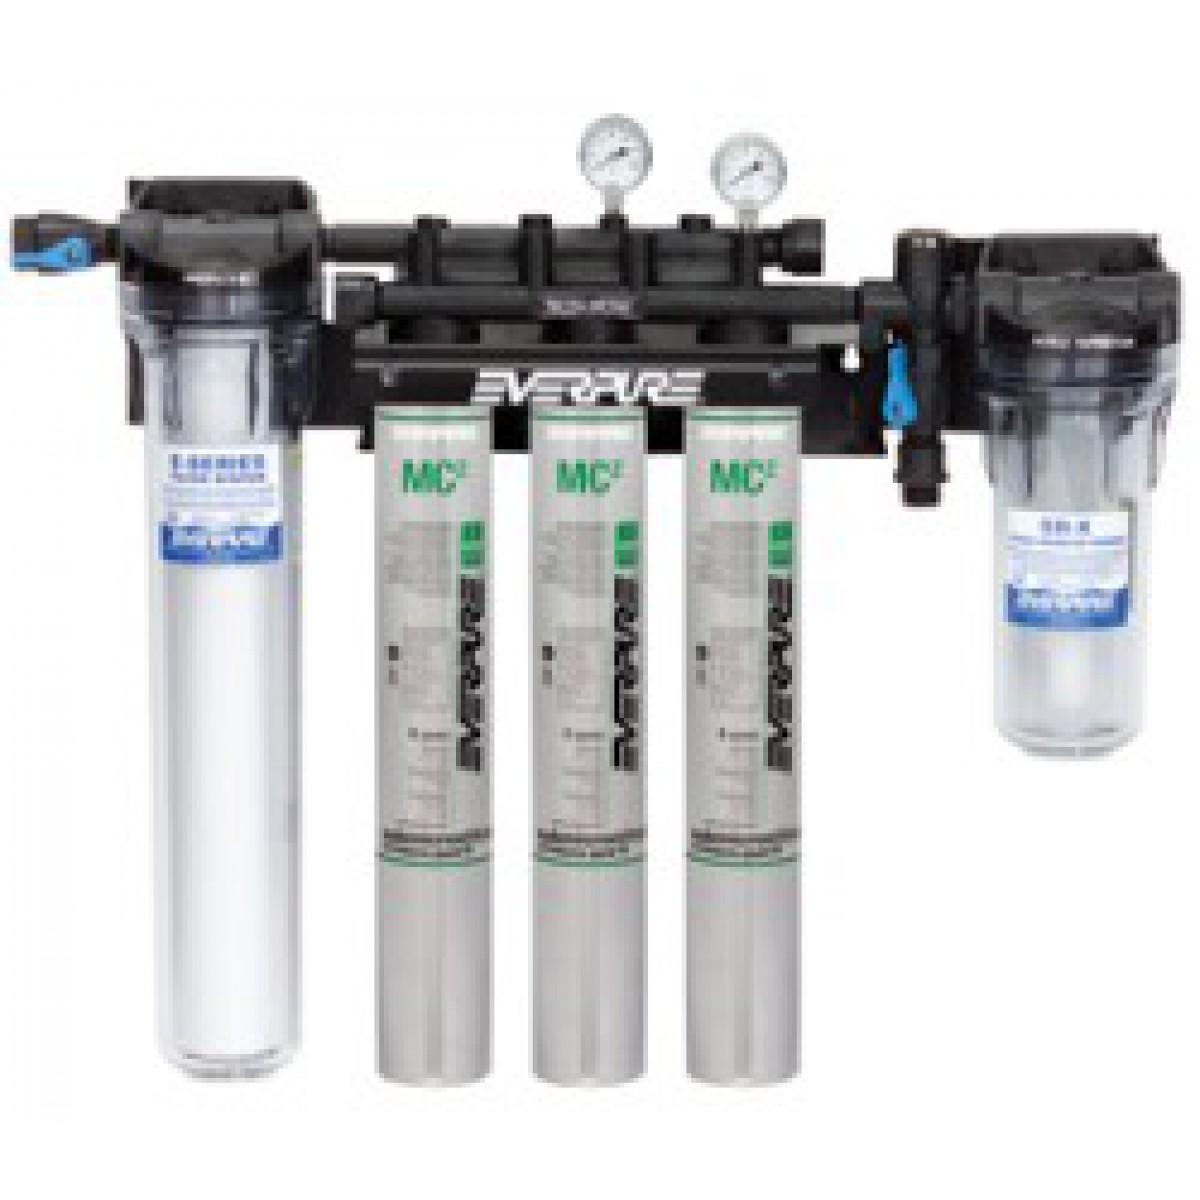 Everpure ev9328 06 high flow csr triple mc2 system for Everpure water filter review